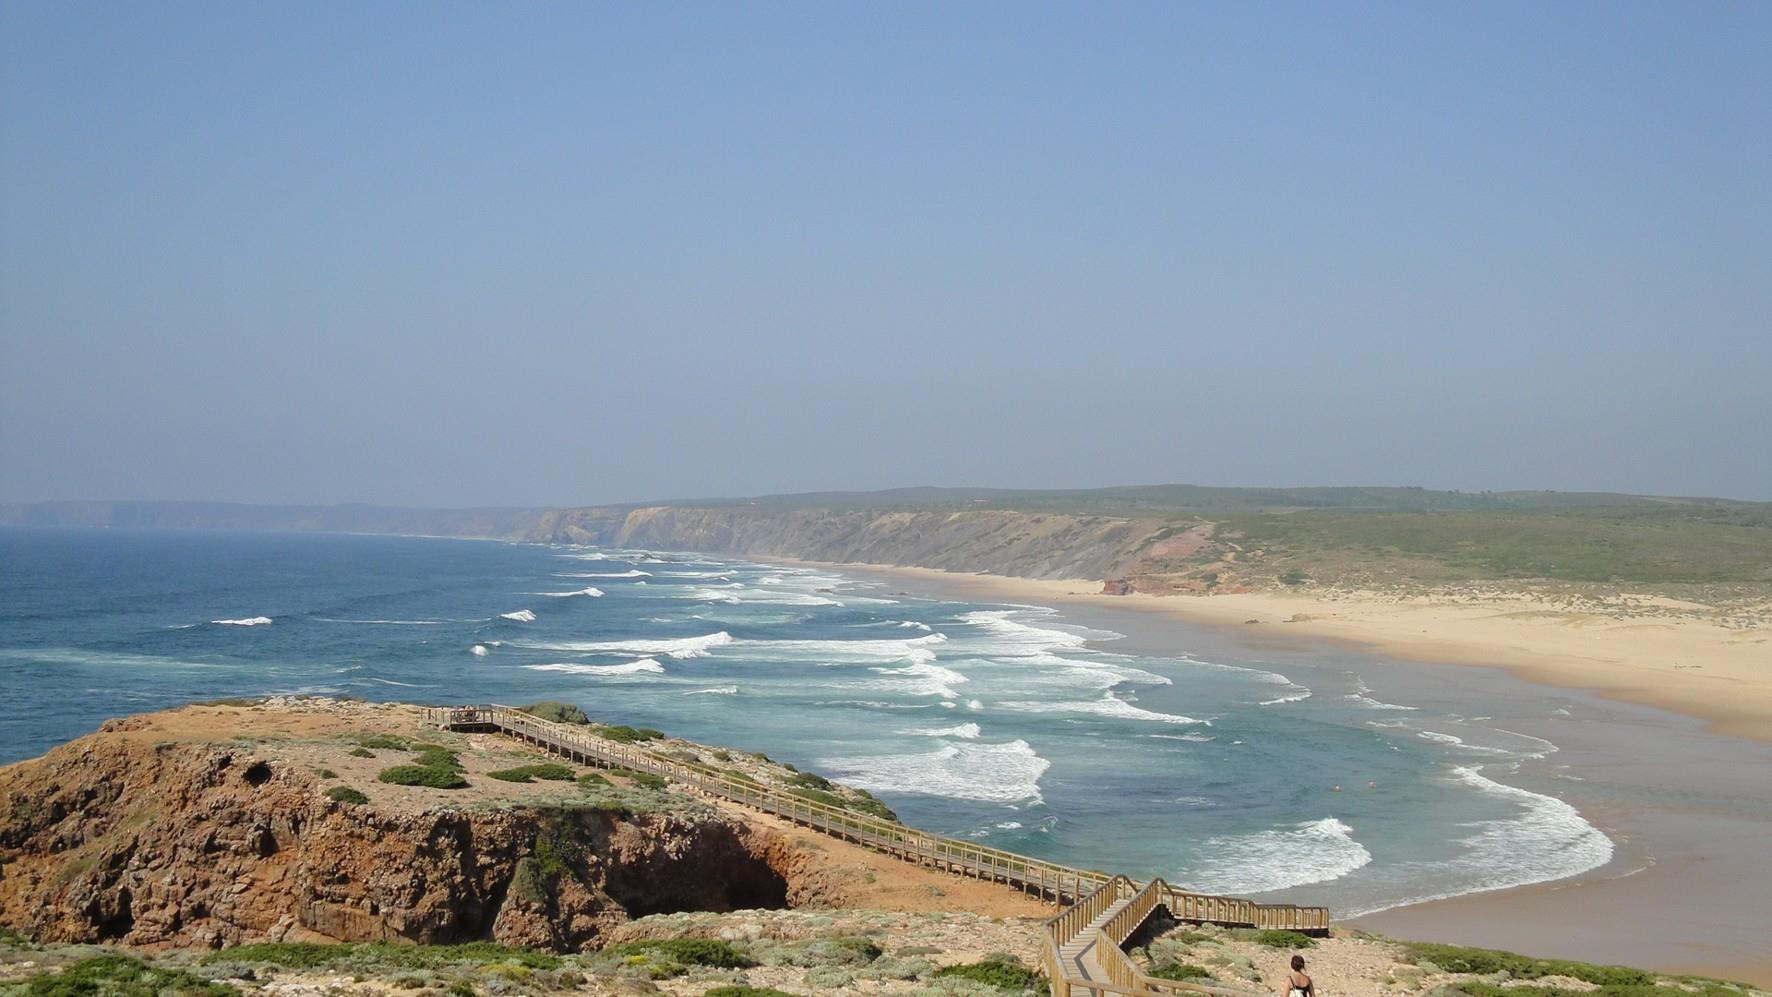 Praia da Bordeira beach in the Algarve